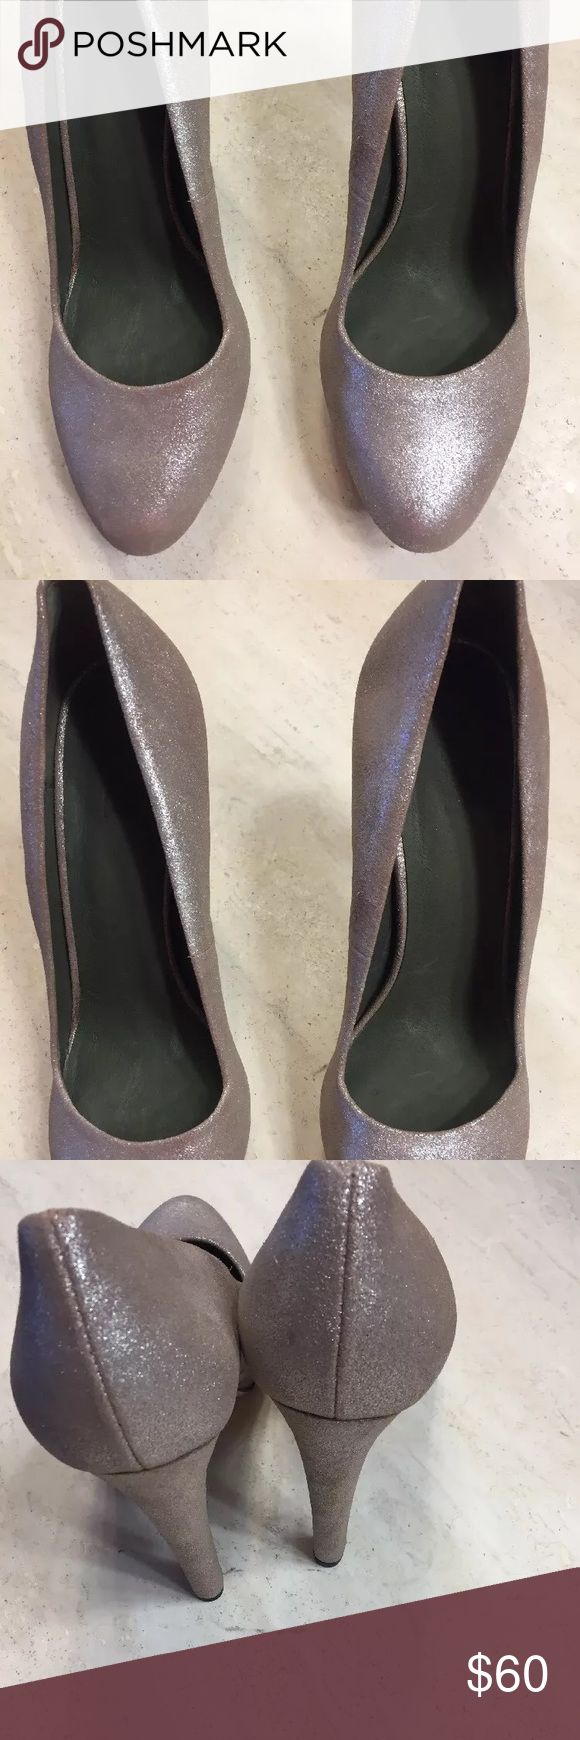 Diesel shoes Up for consideration is a pair of Diesel Dress shoes. These are new. I wore them around the house to determine if they would work for me so they have scuff marks on the sole. They are leather uppers and leather soles. Cost was over $200 originally. They closed toe/heel dress heels. Diesel Shoes Heels